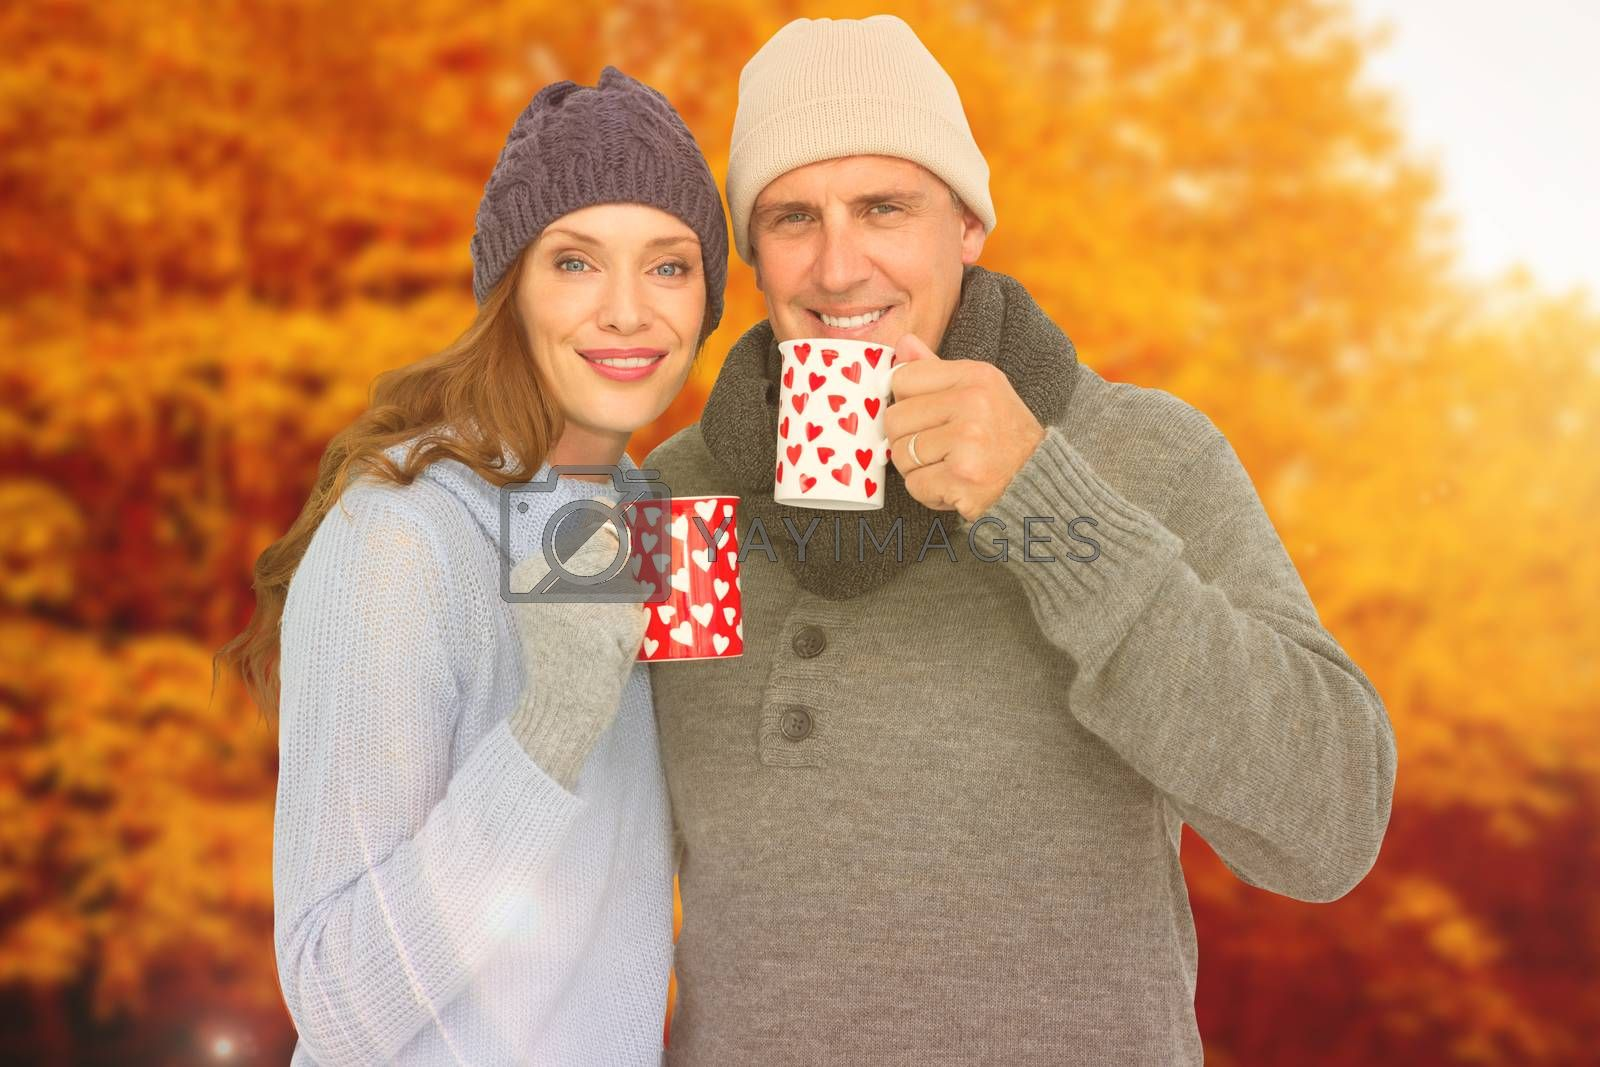 Composite image of happy couple in warm clothing holding mugs by Wavebreakmedia